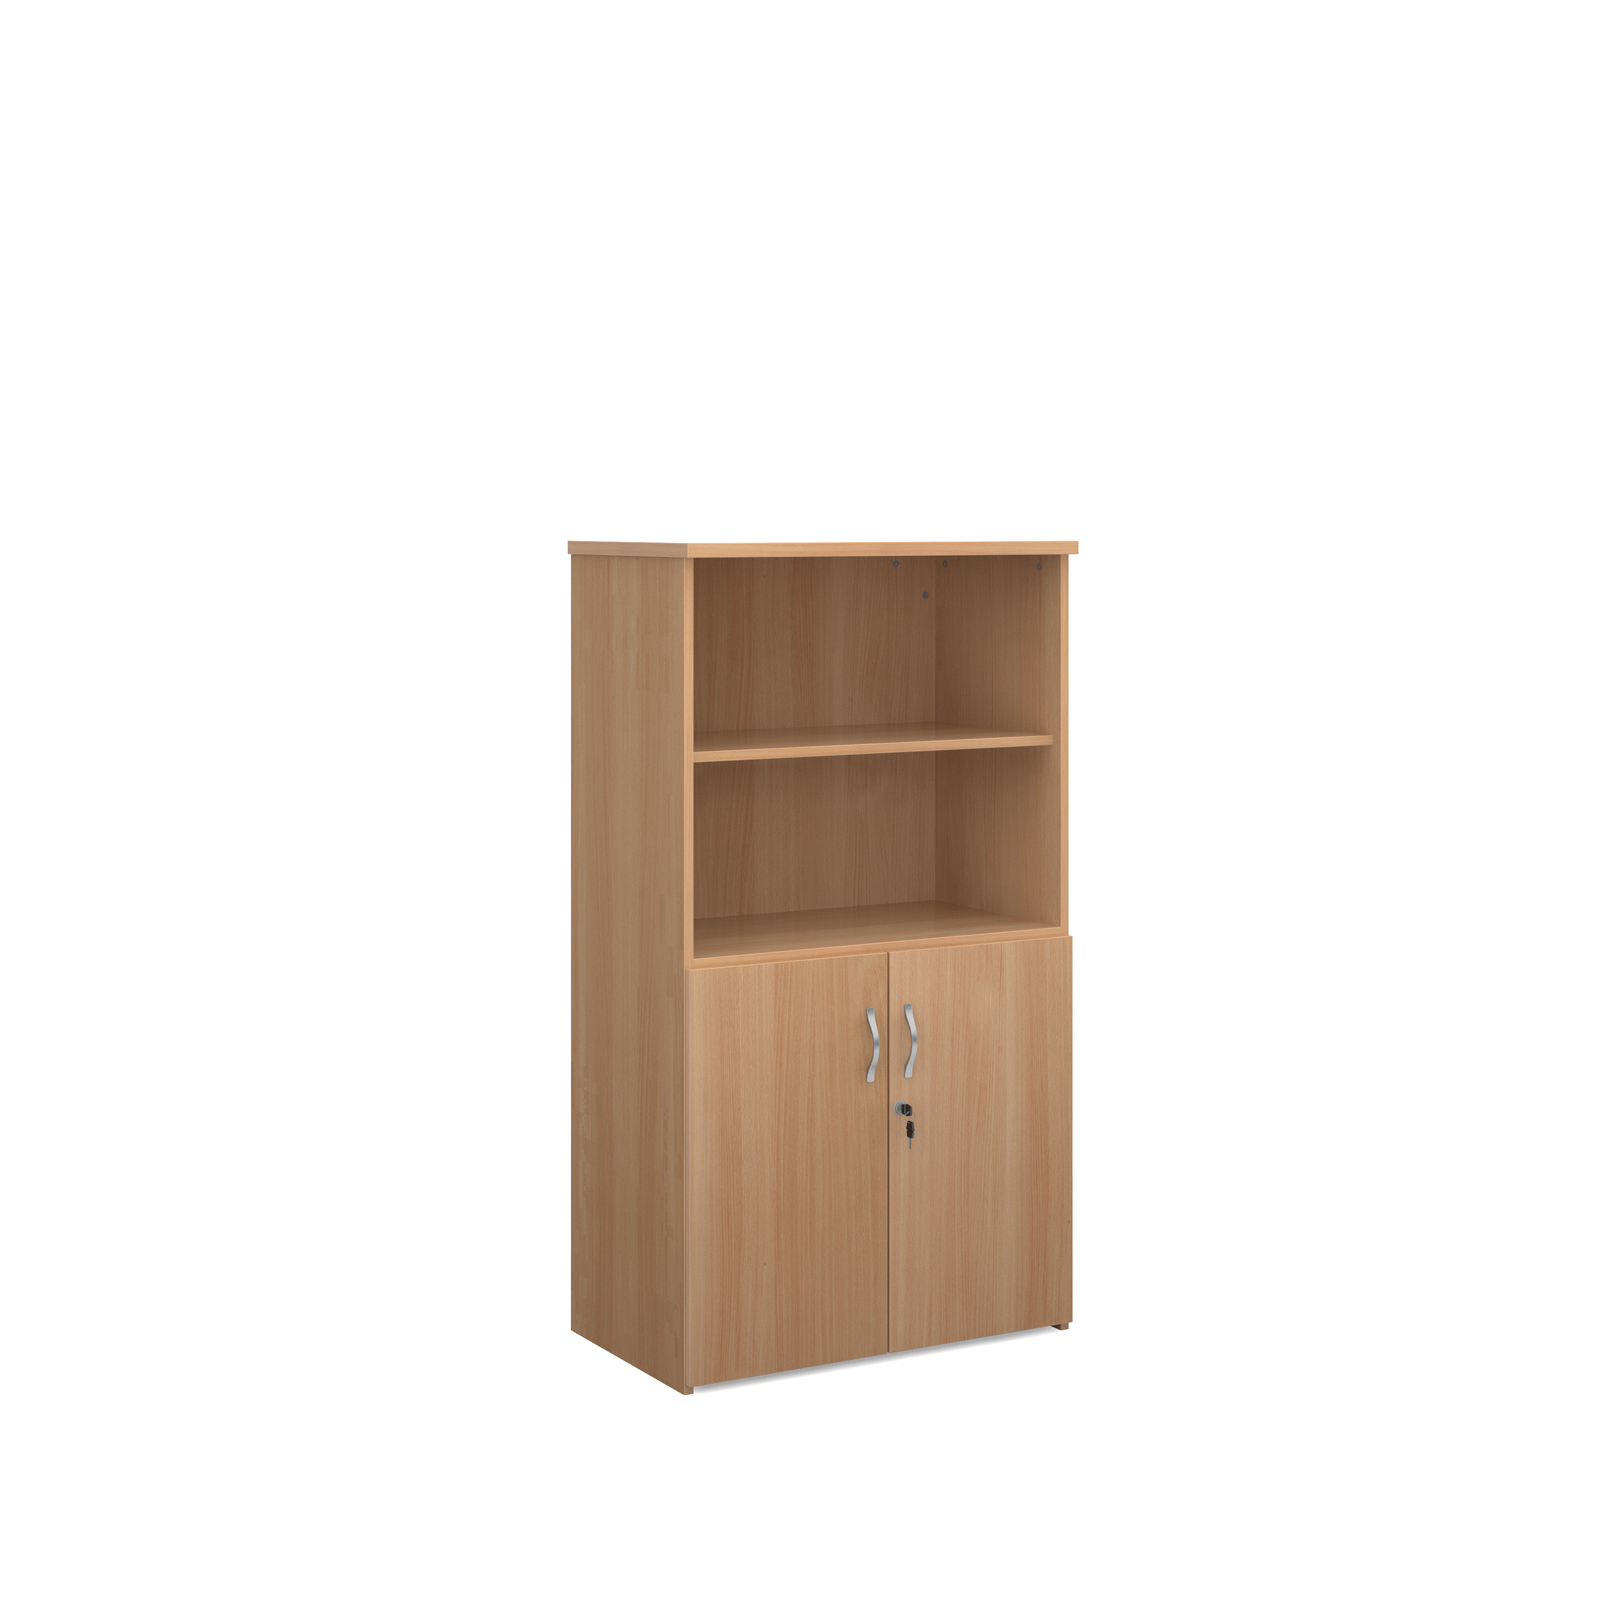 1440mm high combination unit with open top and wood doors in beech